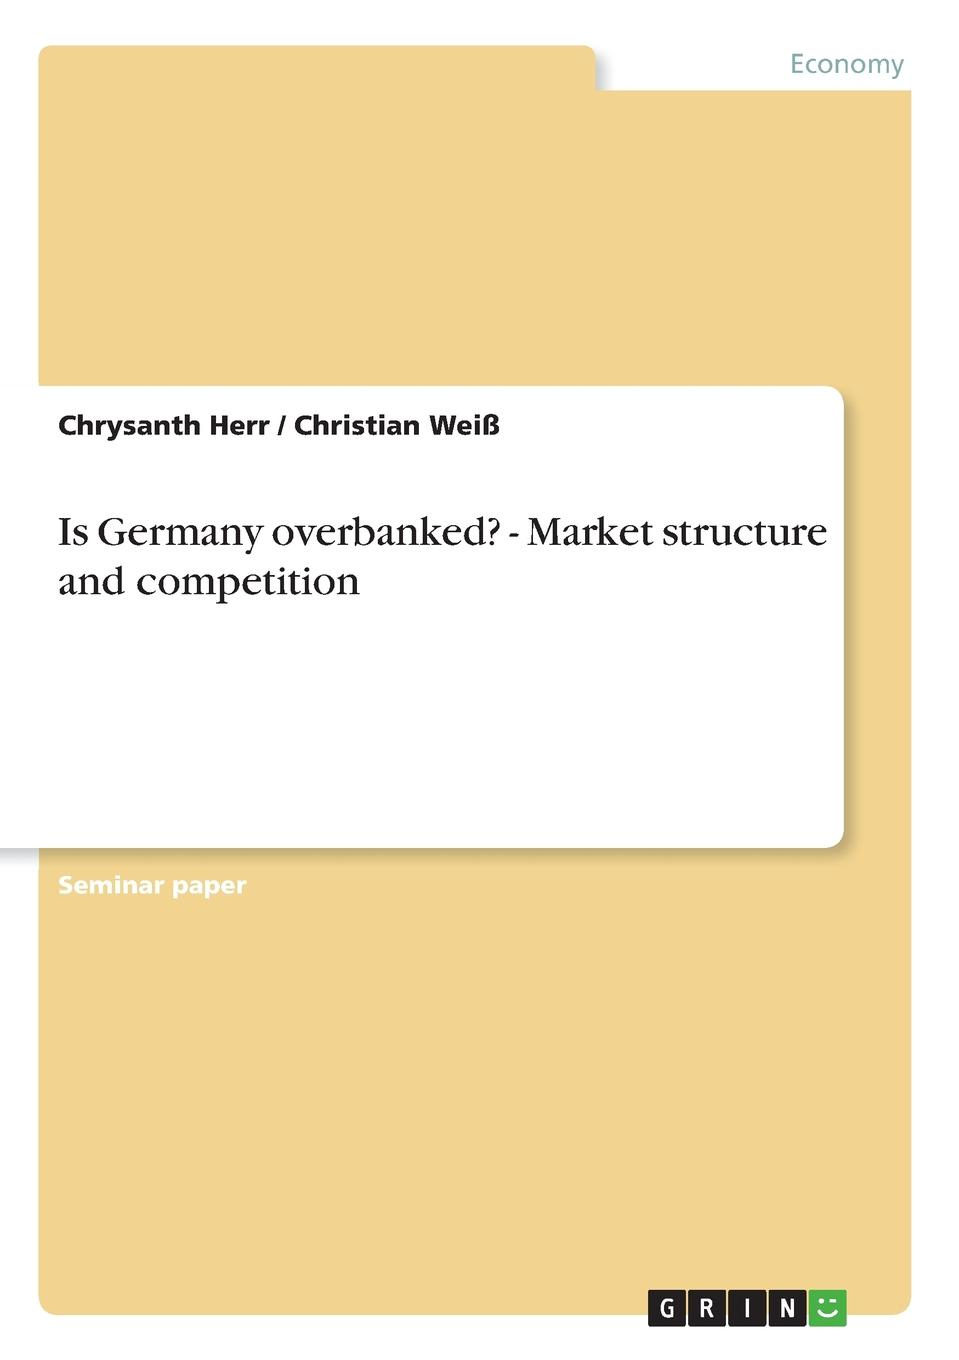 Chrysanth Herr, Christian Weiß Is Germany overbanked. - Market structure and competition the effect of alm on commercial banks profitability